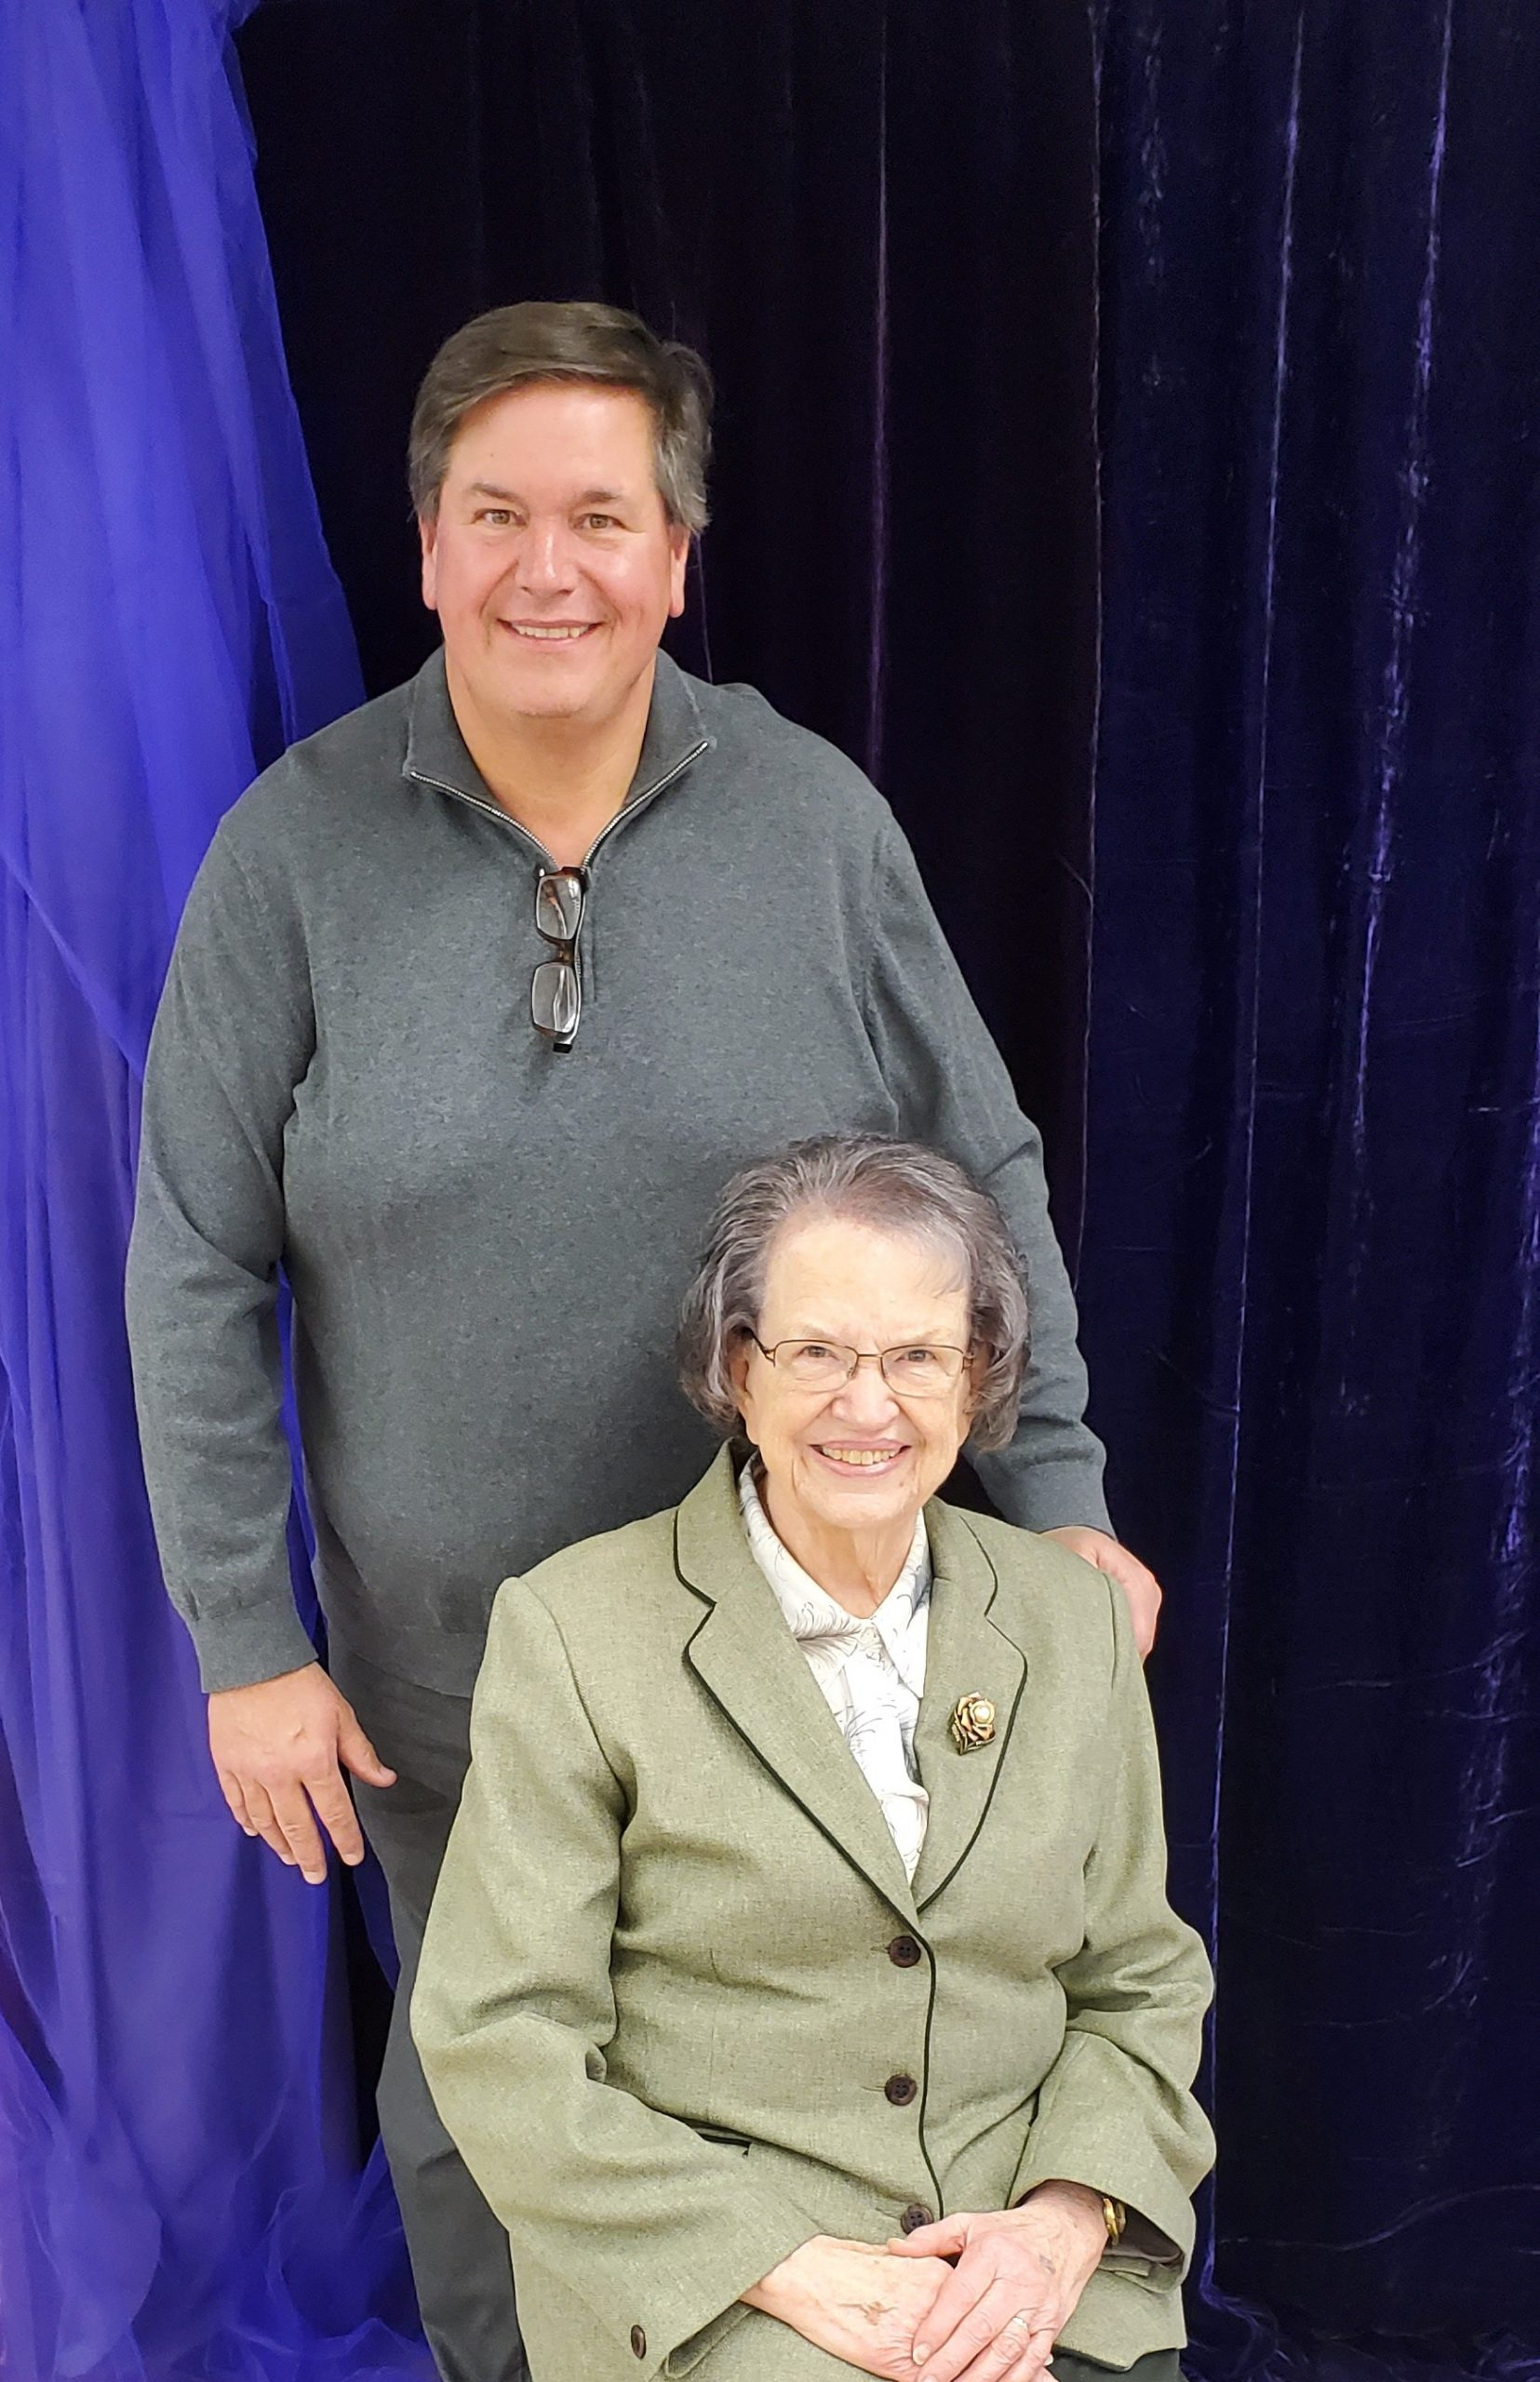 Local celebrity pianist extraordinaire Ralph Ross performed the duration of the Victorian Tea, and posed here with his lovely mother Dortha